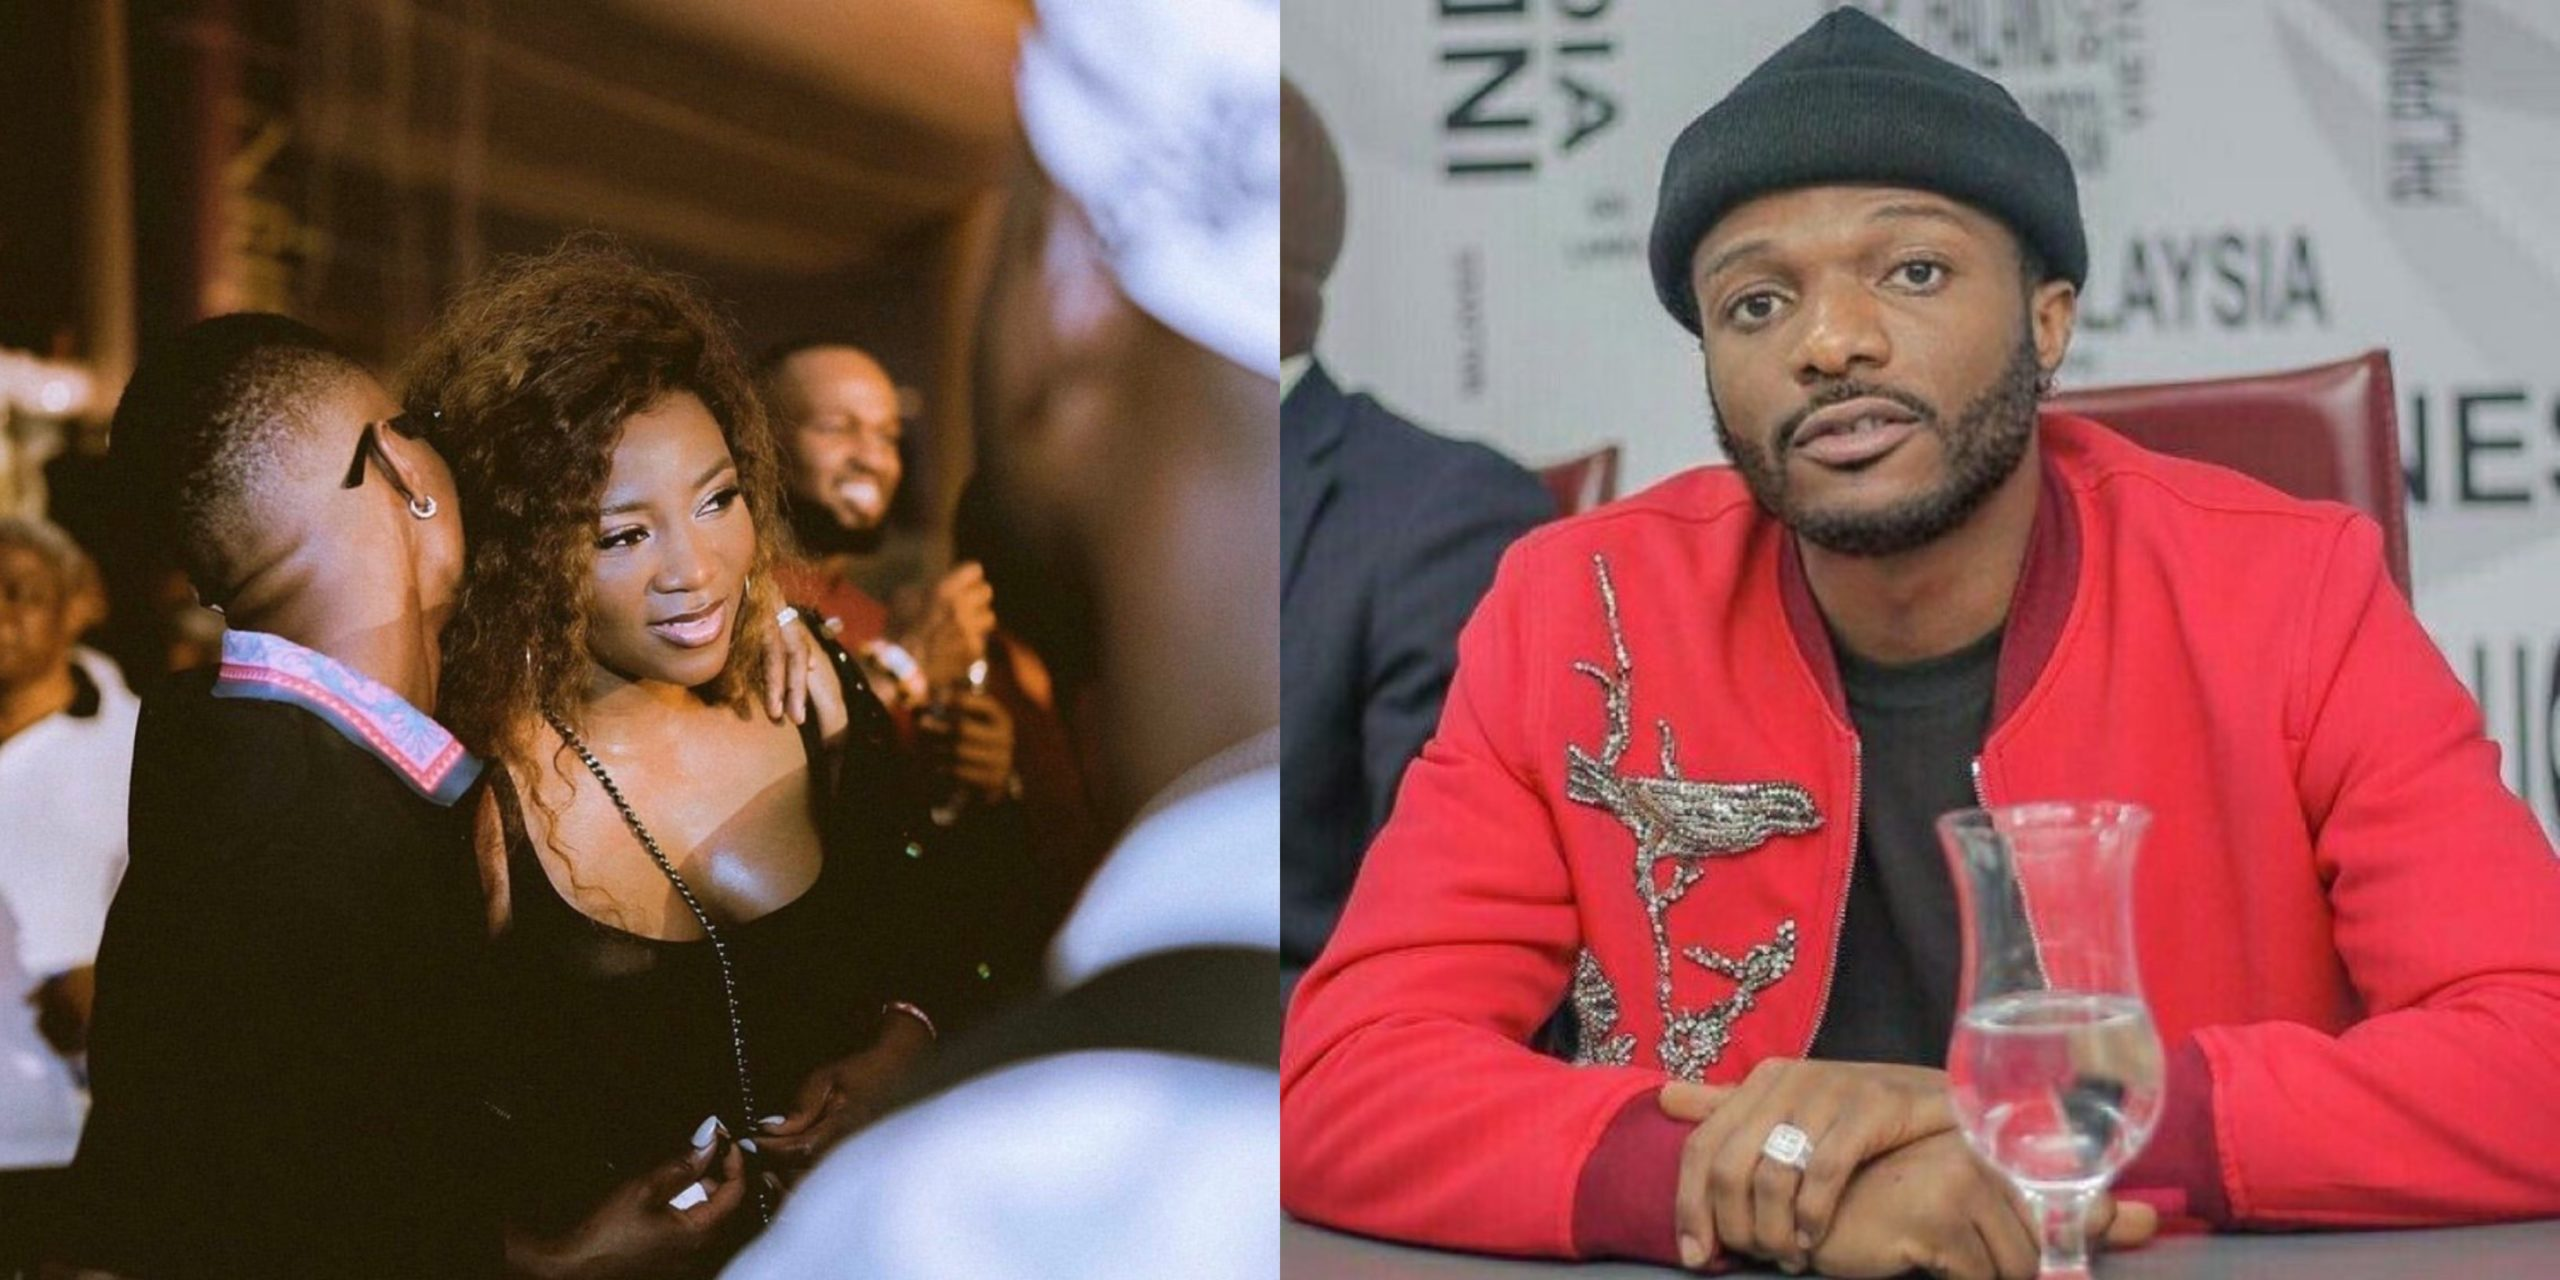 Why do you like older women? - Fans react as Wizkid hangs out with Genevieve Nnaji (Photos)